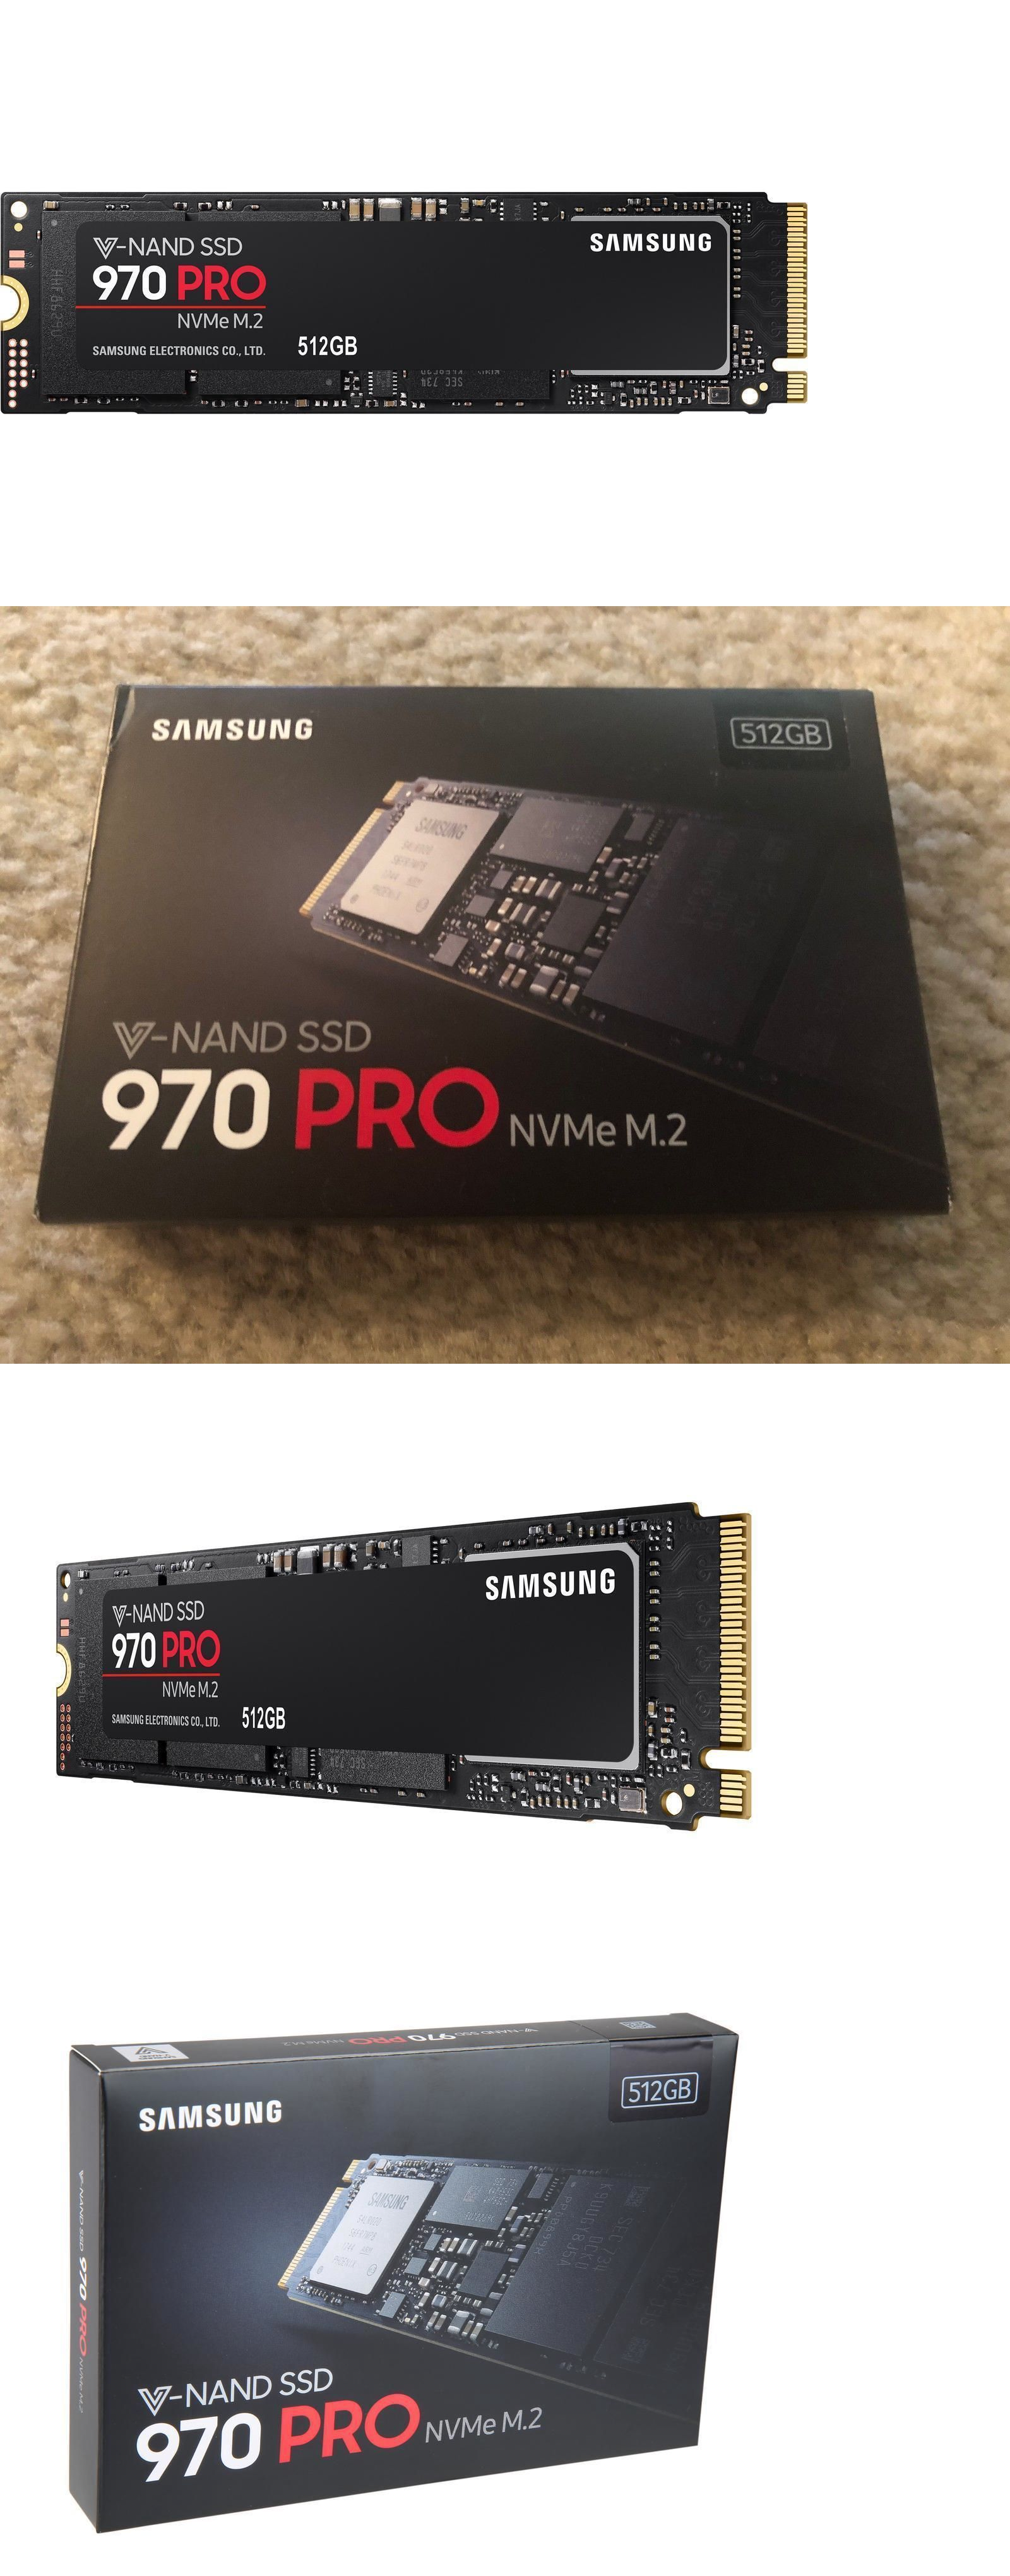 Solid State Drives 175669 New Samsung 970 Pro 512gb Pcie Nvme M 2 Solid State Drive Ssd Mz V7p512 Buy It Now Only 199 99 On New Samsung Samsung Driving